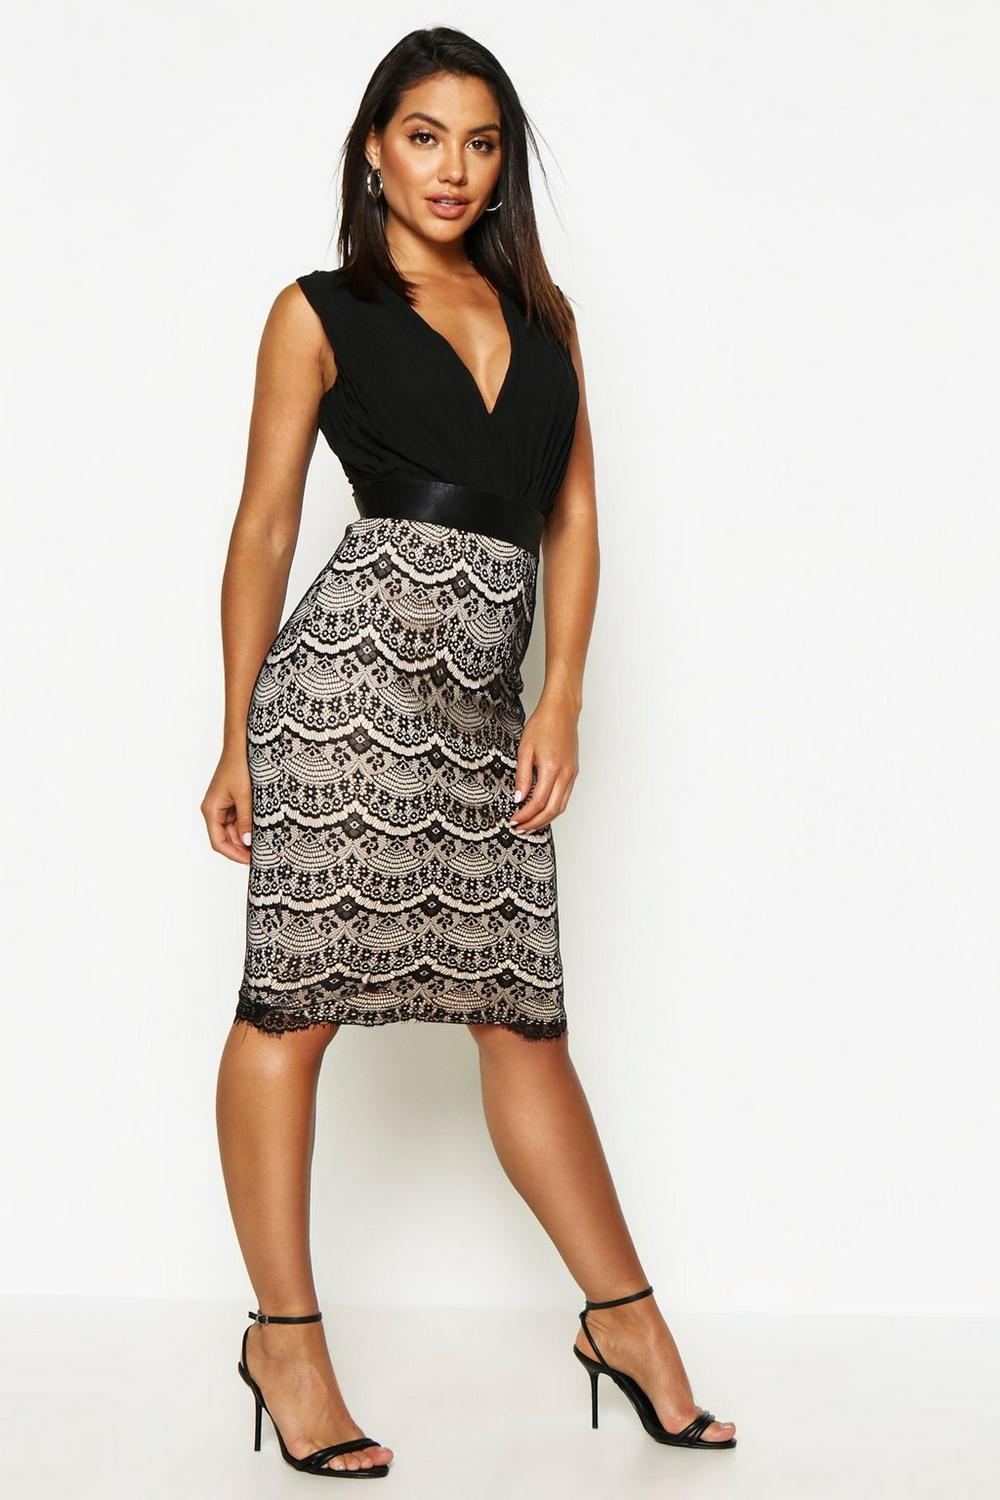 b5400098adf9 Boutique 2 in 1 Bodycon Midi Dress. Hover to zoom